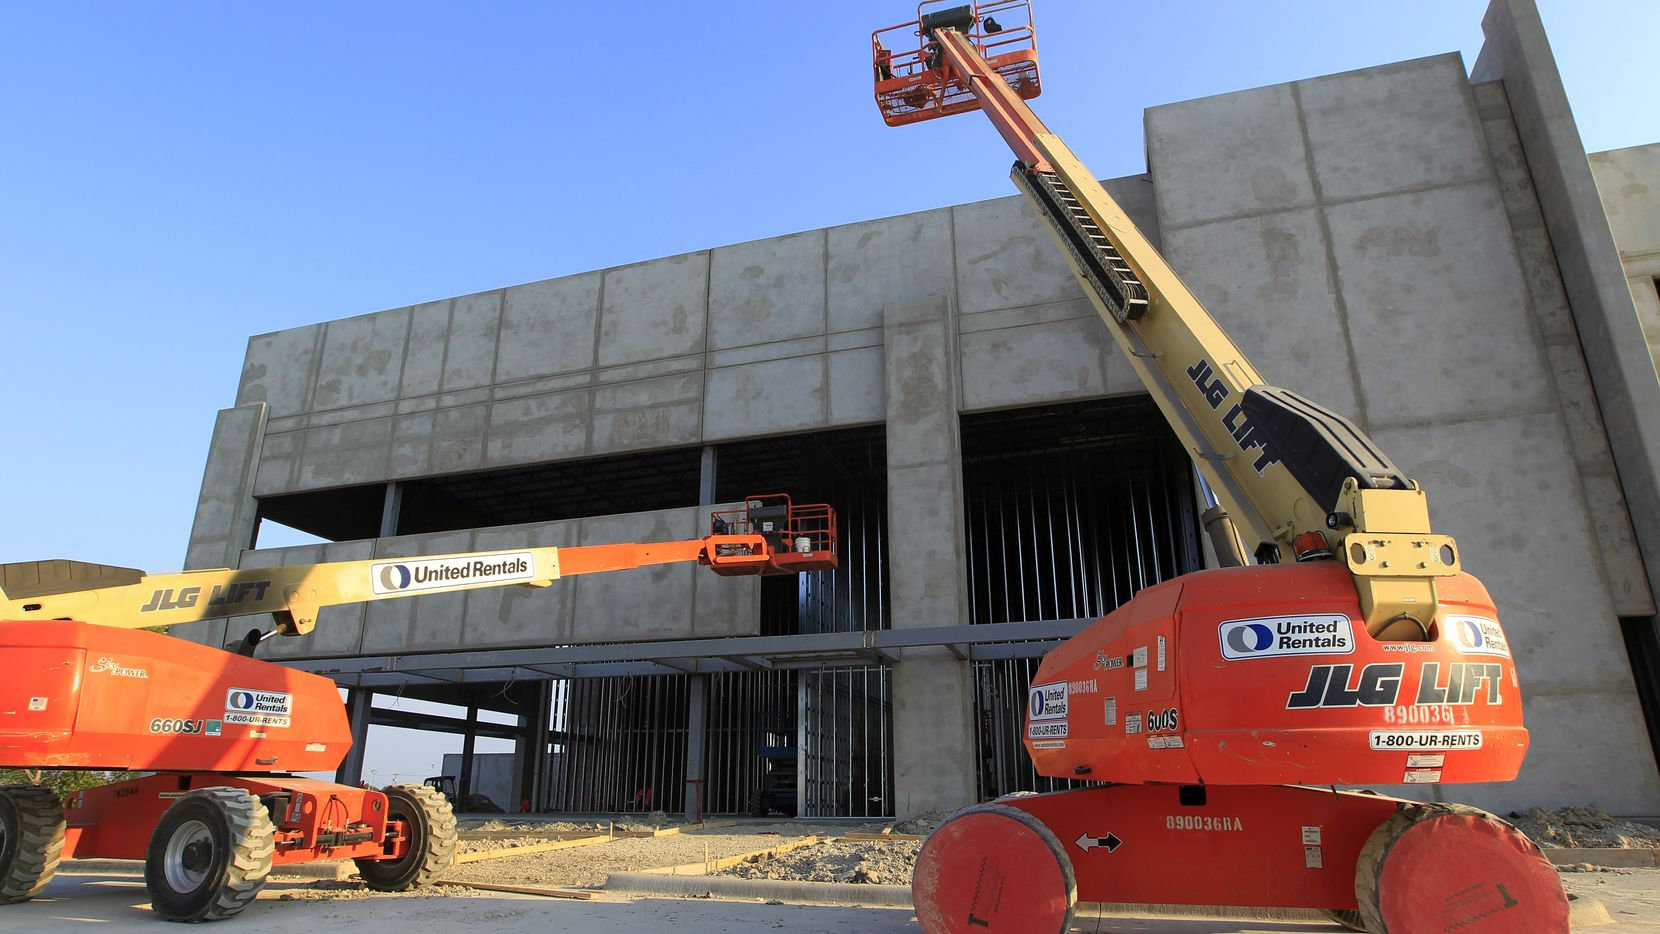 Almost 20 million square feet of warehouse space is being built in North Texas, one of the largest volumes in the country.